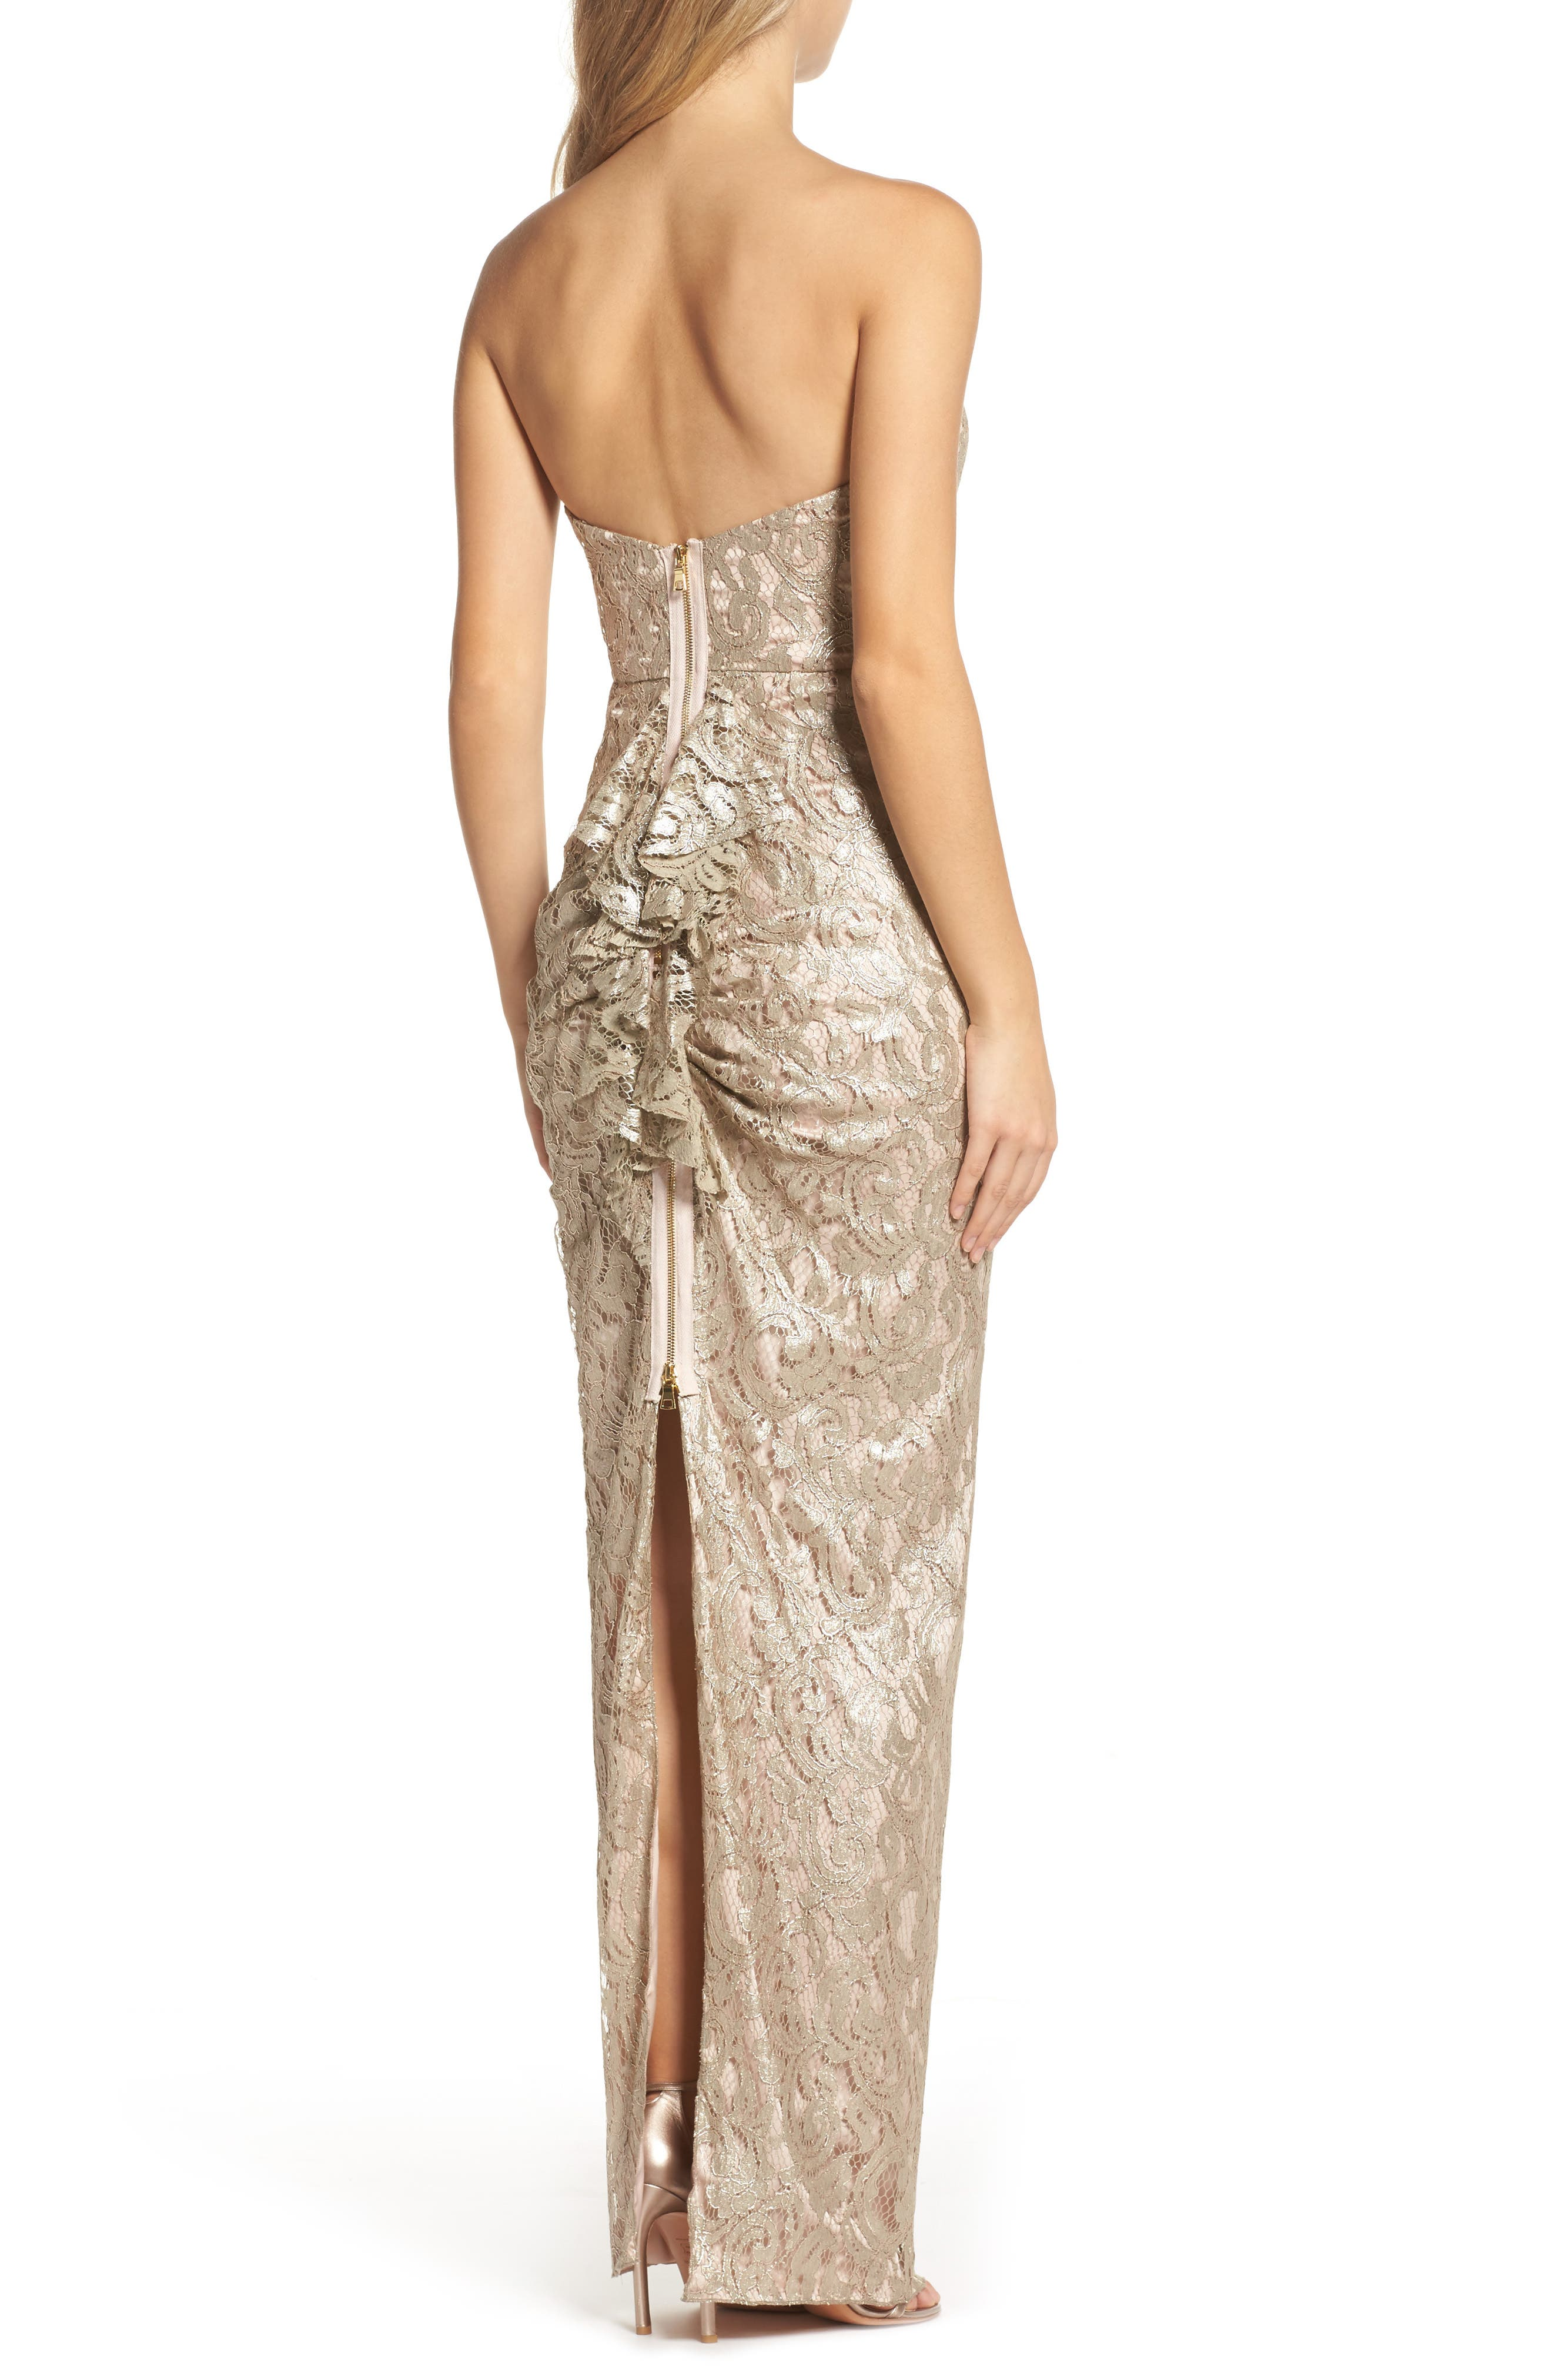 Starla Ruffle Back Strapless Lace Gown,                             Alternate thumbnail 2, color,                             Gold